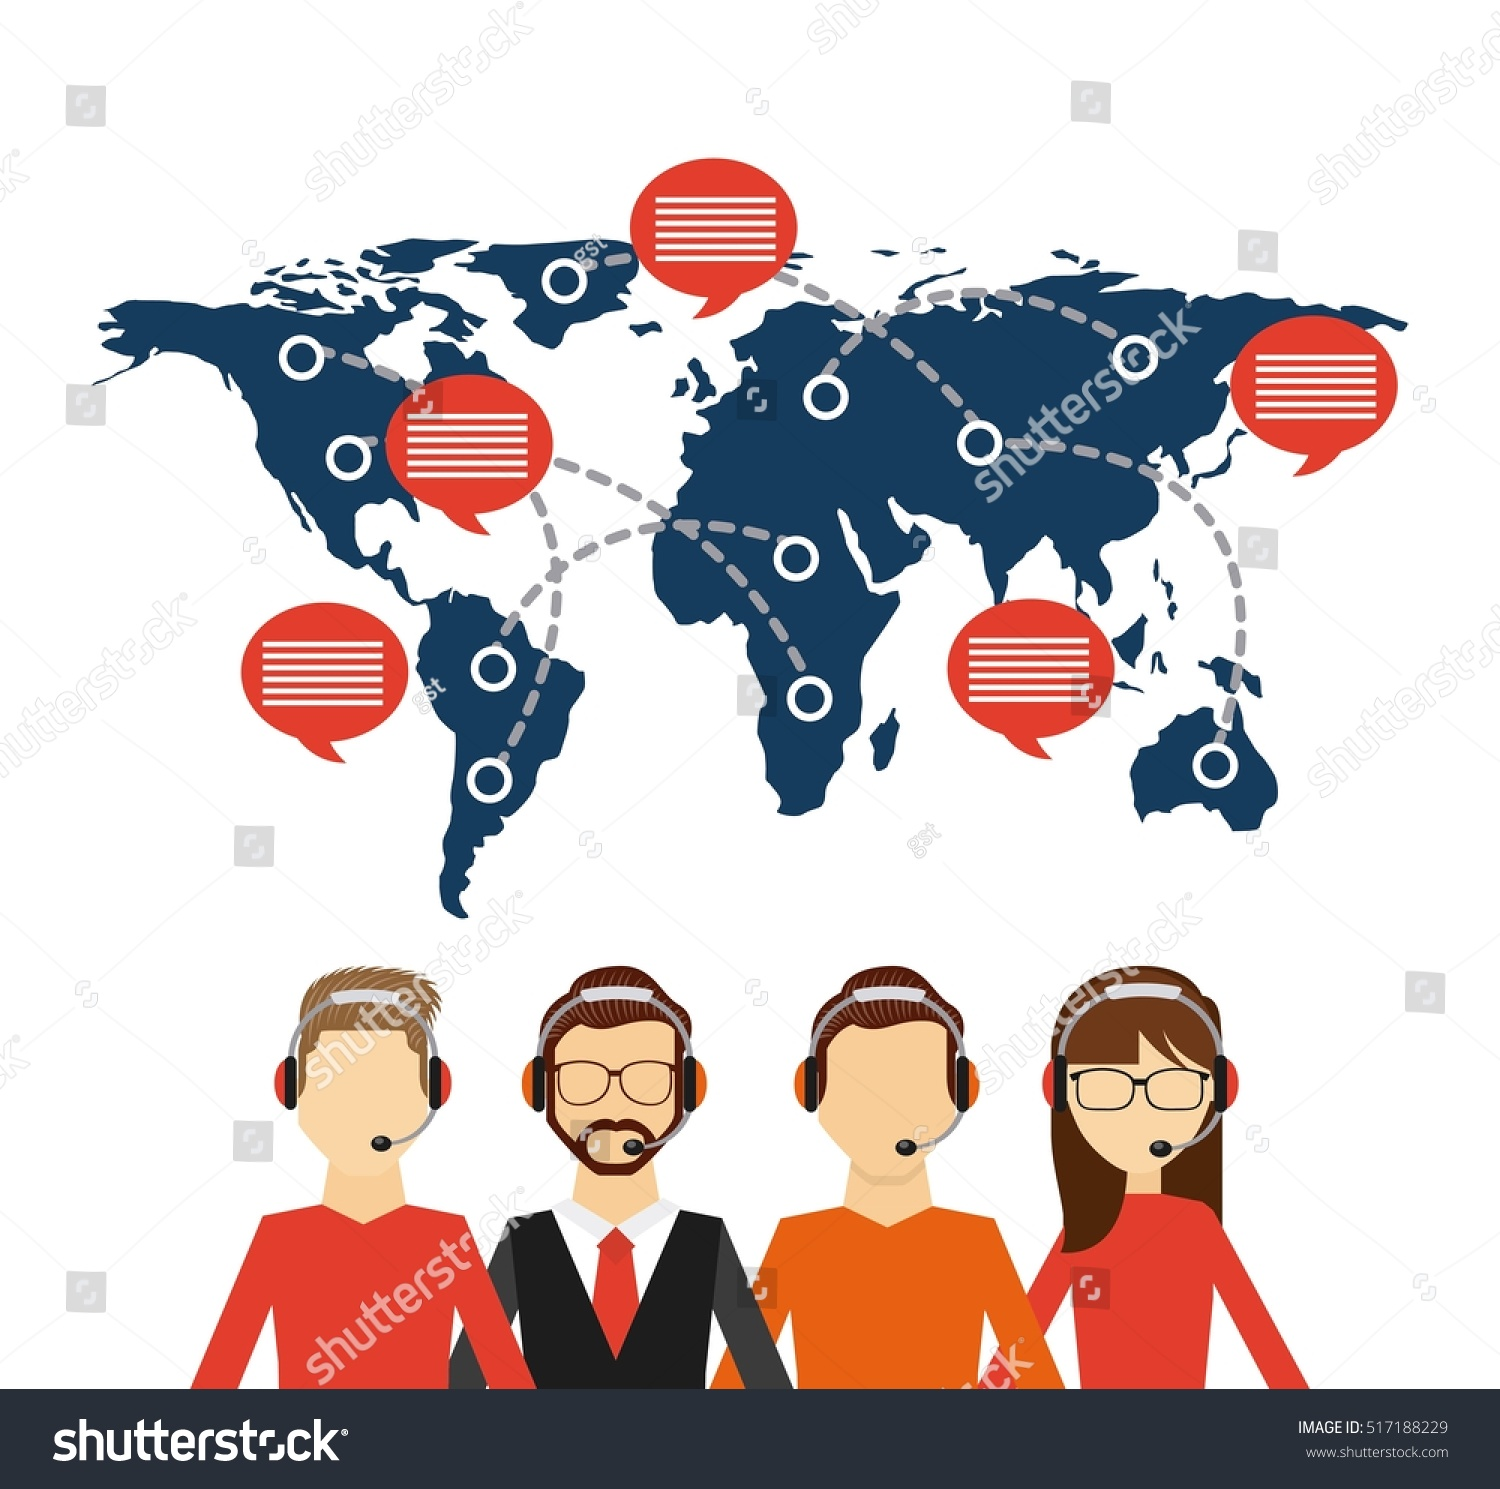 Customer service workers headset world map vectores en stock customer service workers headset world map vectores en stock 517188229 shutterstock gumiabroncs Images